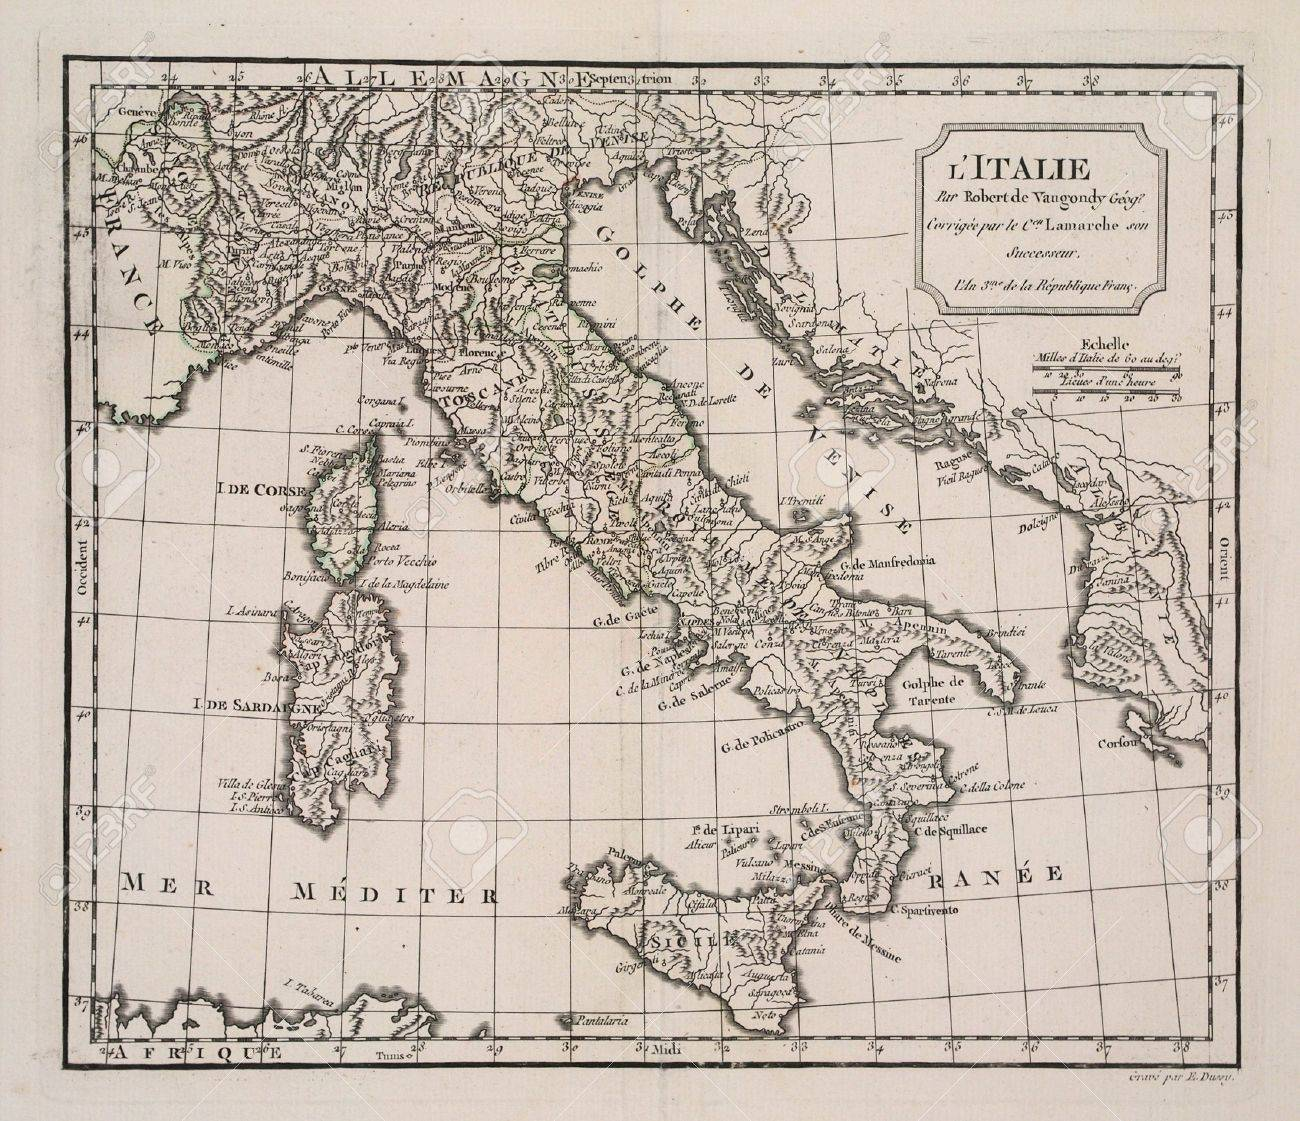 year 3 of the french revolution ( 1791) map of Italy. Stock Photo - 11425712